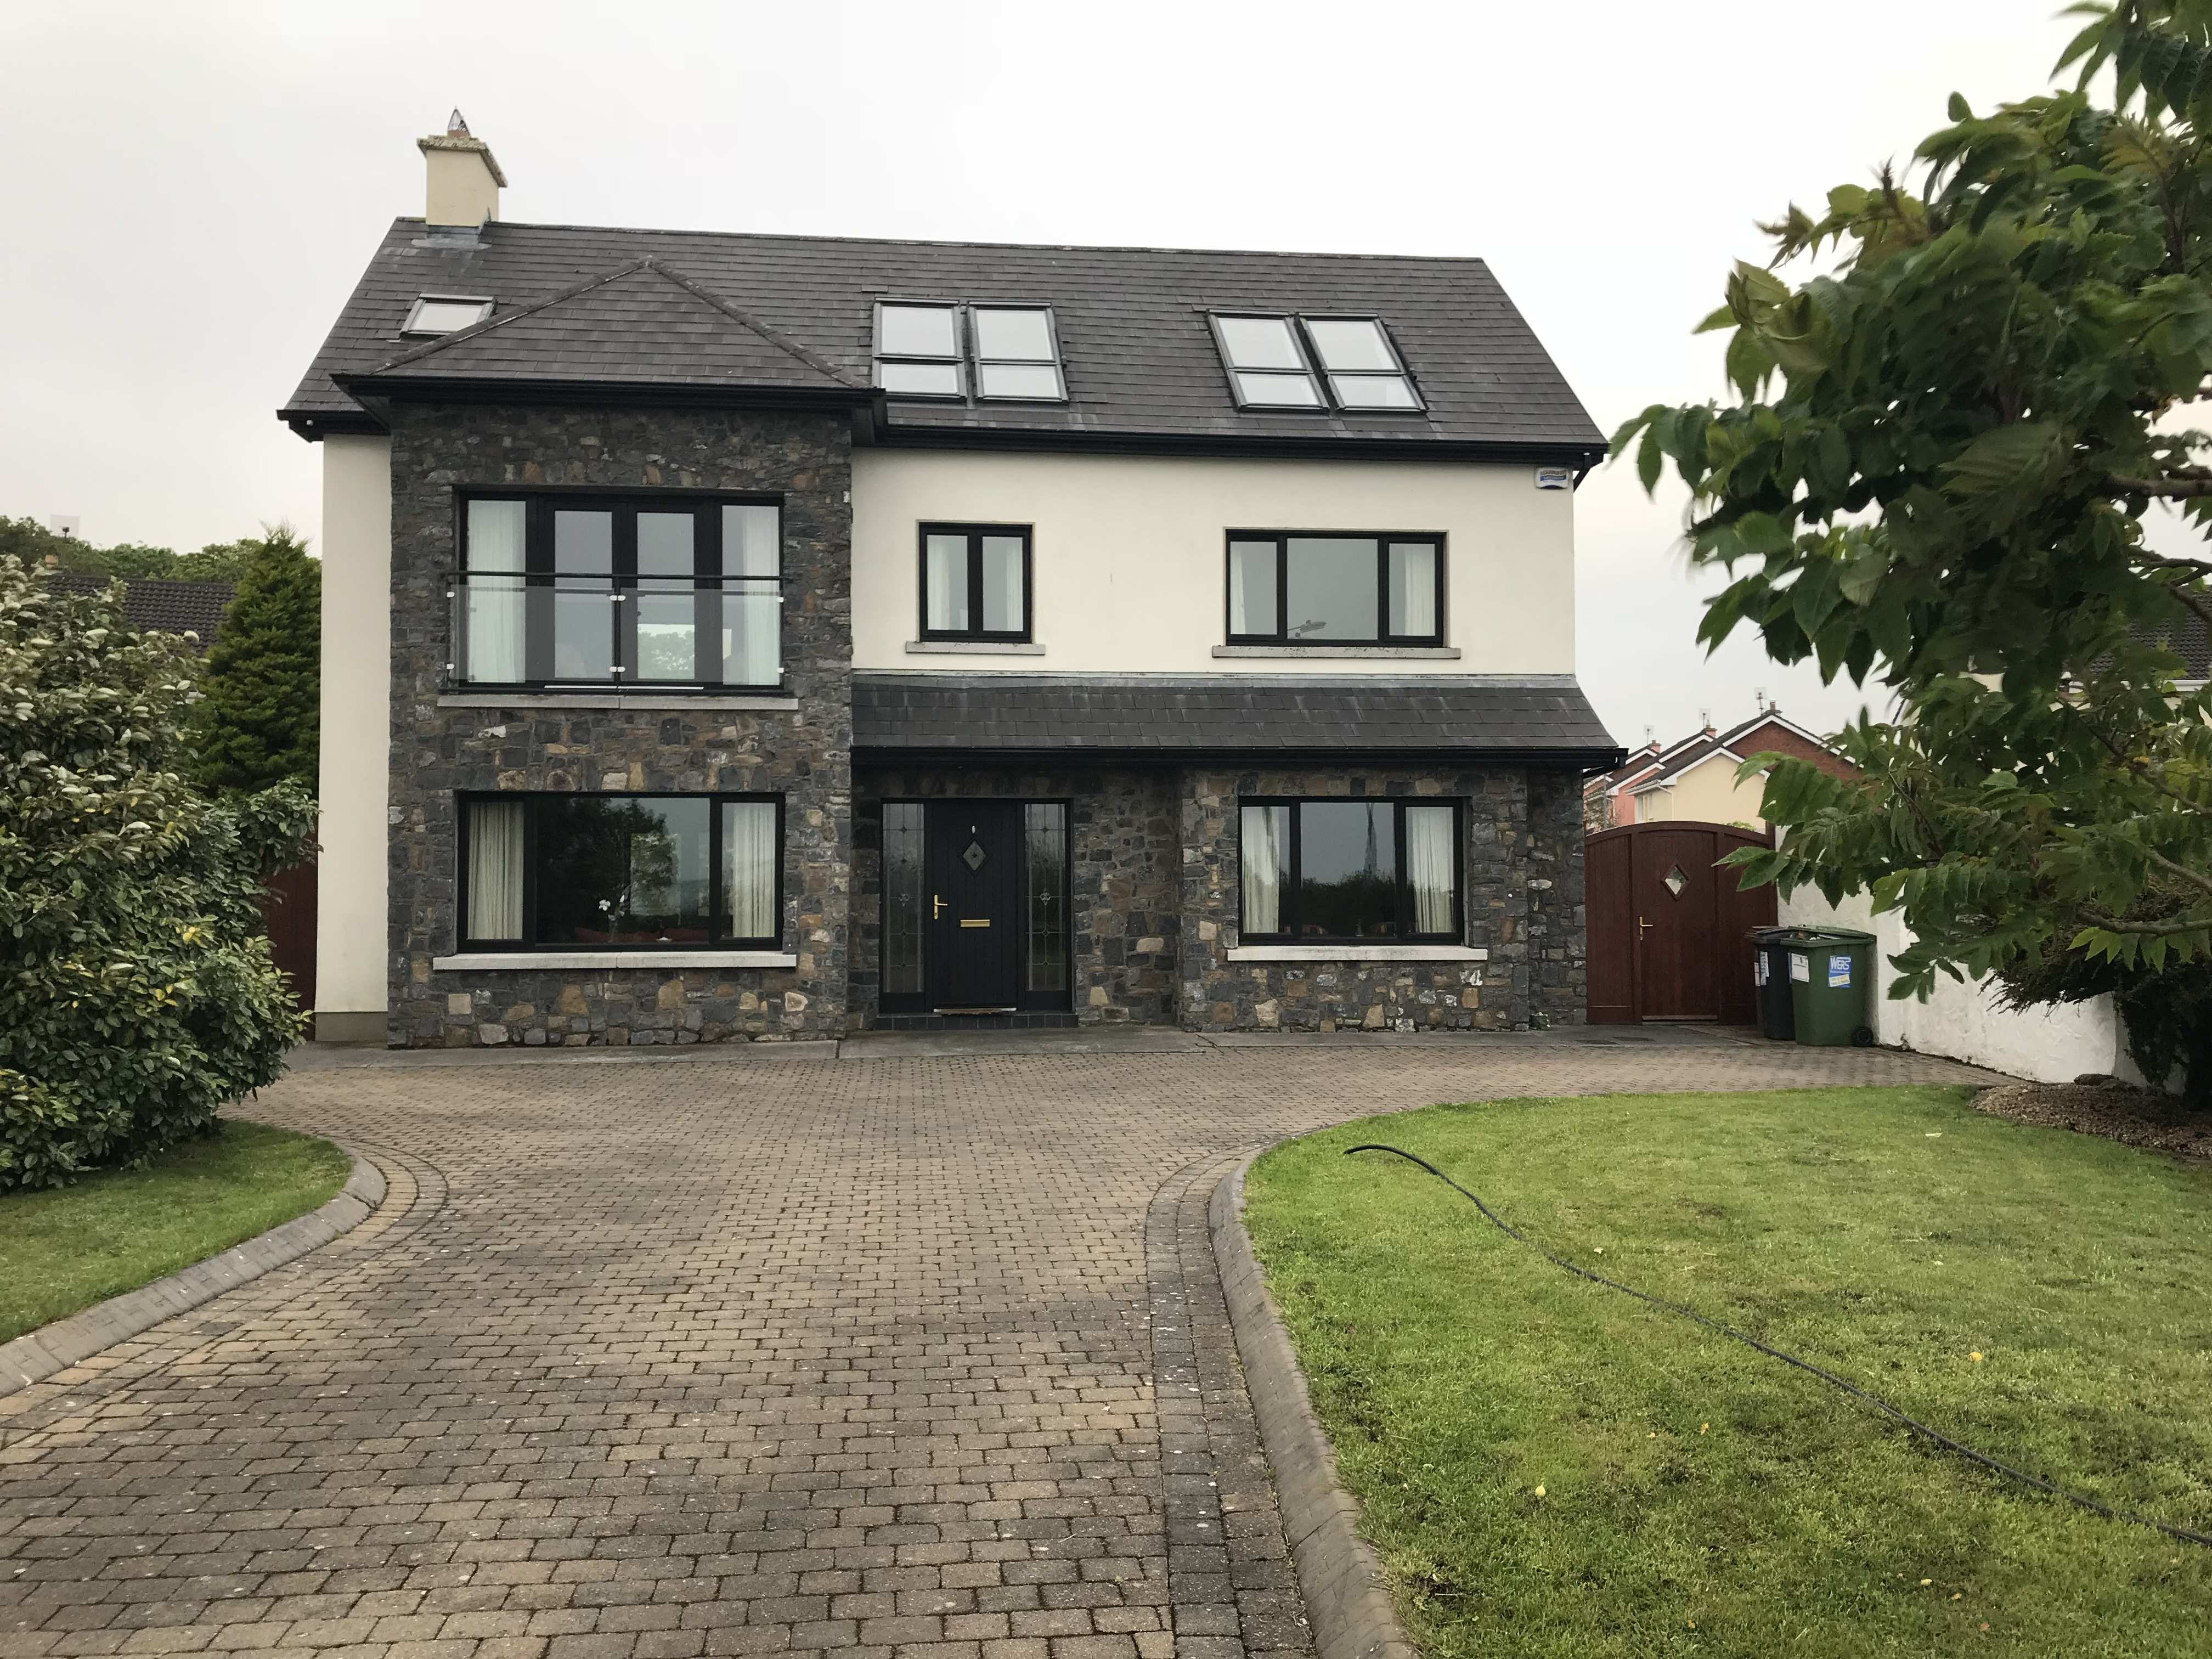 208 Bluebell Woods, Oranmore, Co. Galway.